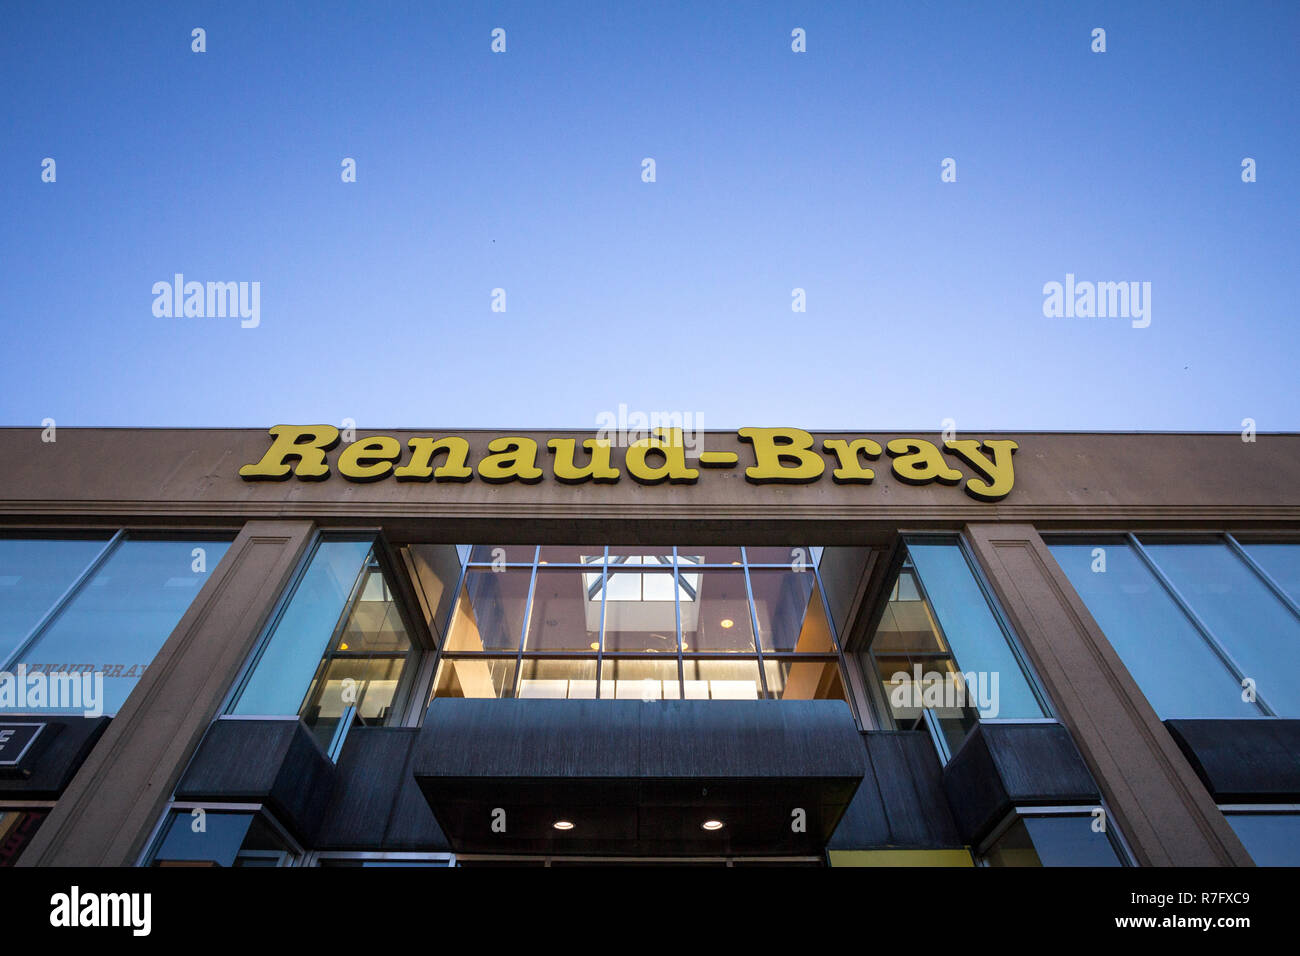 MONTREAL, CANADA - NOVEMBER 4, 2018: Renaud-Bray logo on a bookstore in Montreal, Quebec. Renaud Bray is a chain of bookstores selling French language - Stock Image